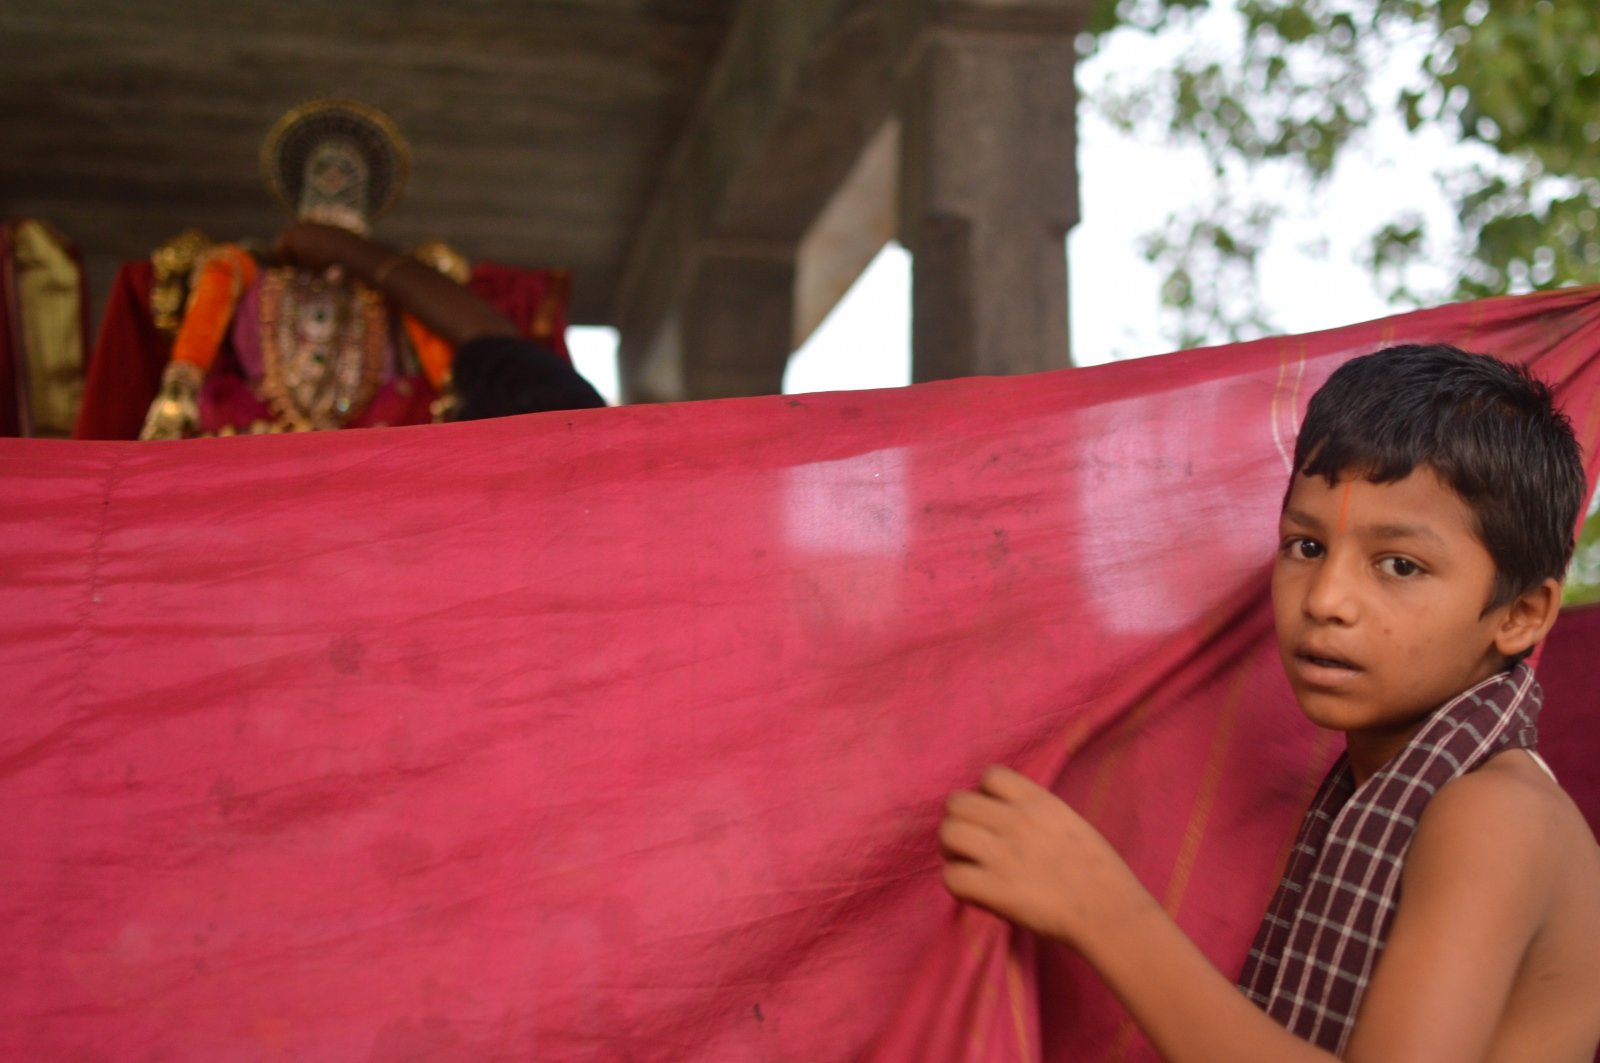 A young boy hides the preparation of a religious festival taking place in late May in Kanchipuram, India.